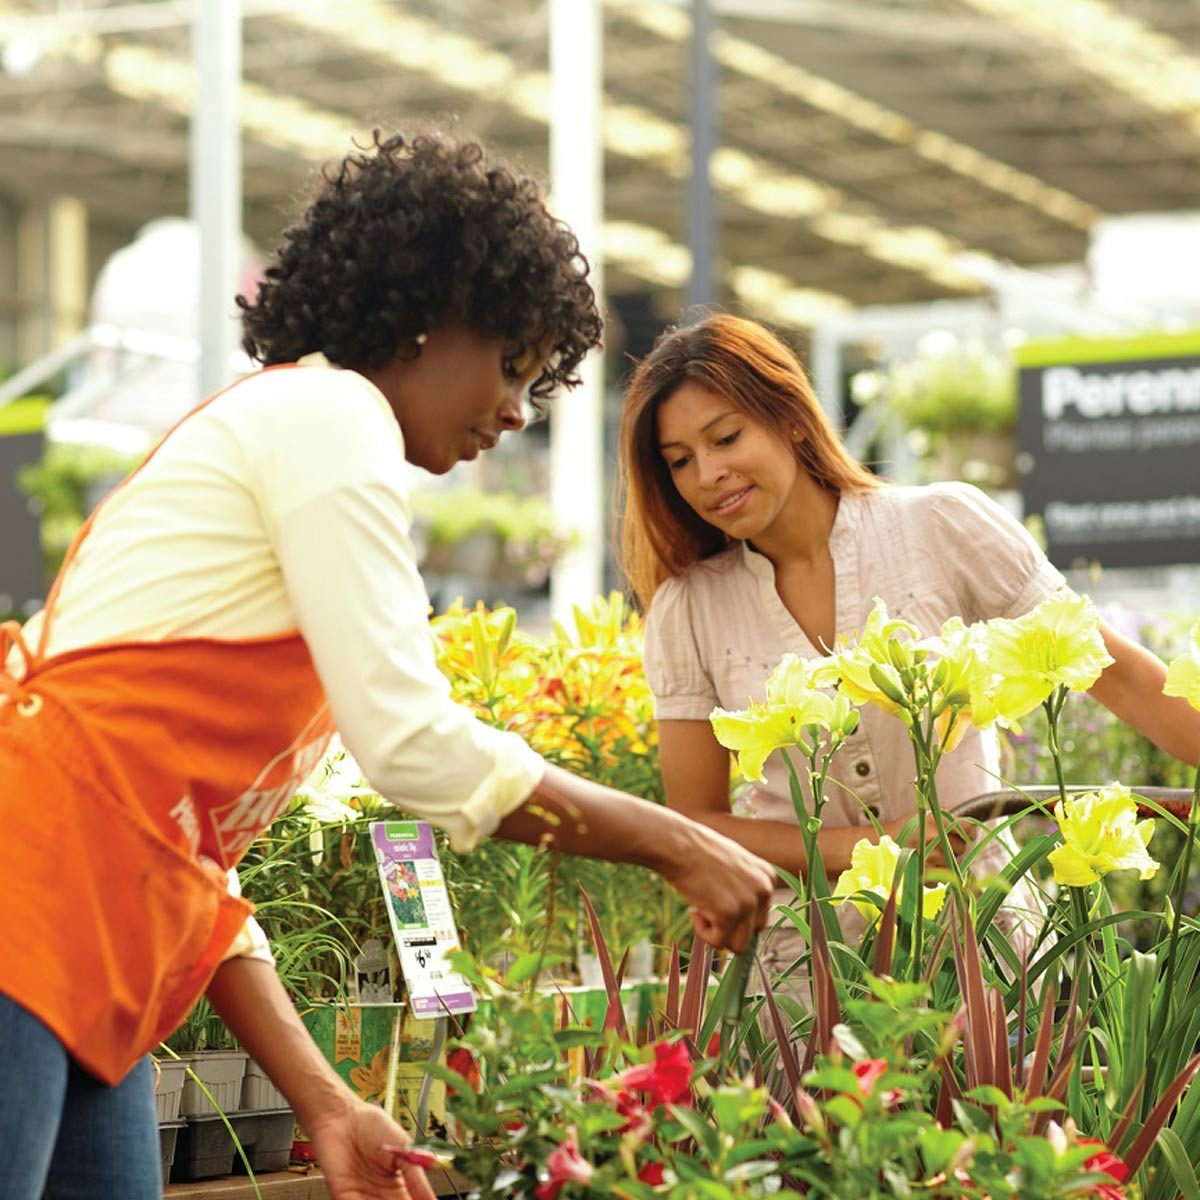 Try the Garden Center Checkout